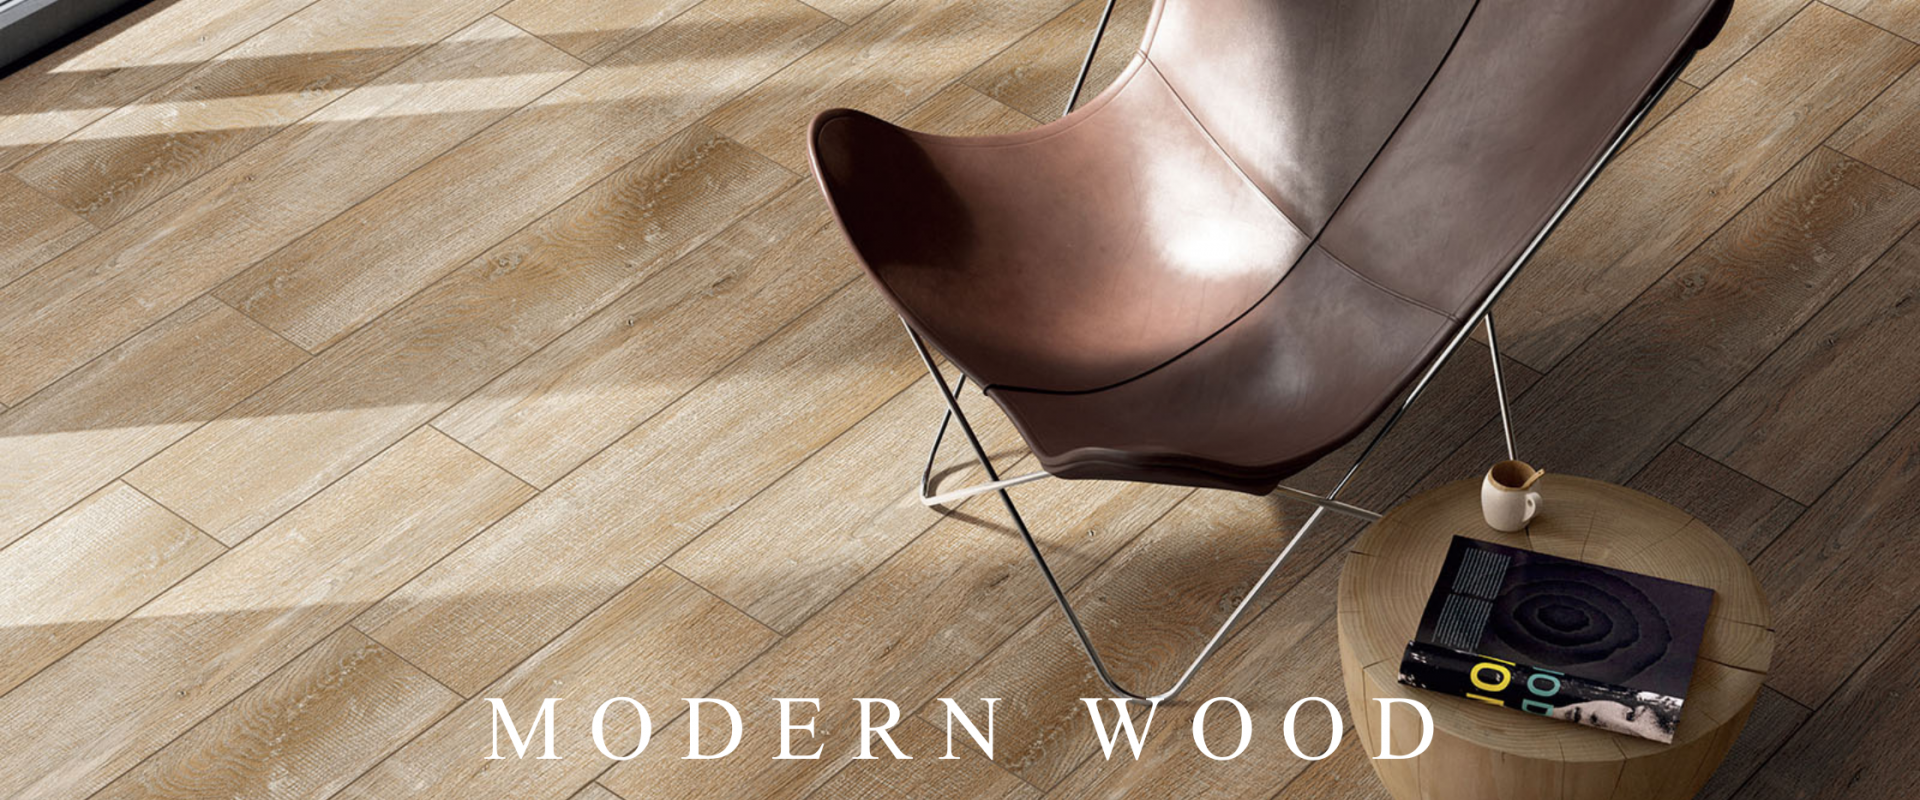 ProductBanner_Wood